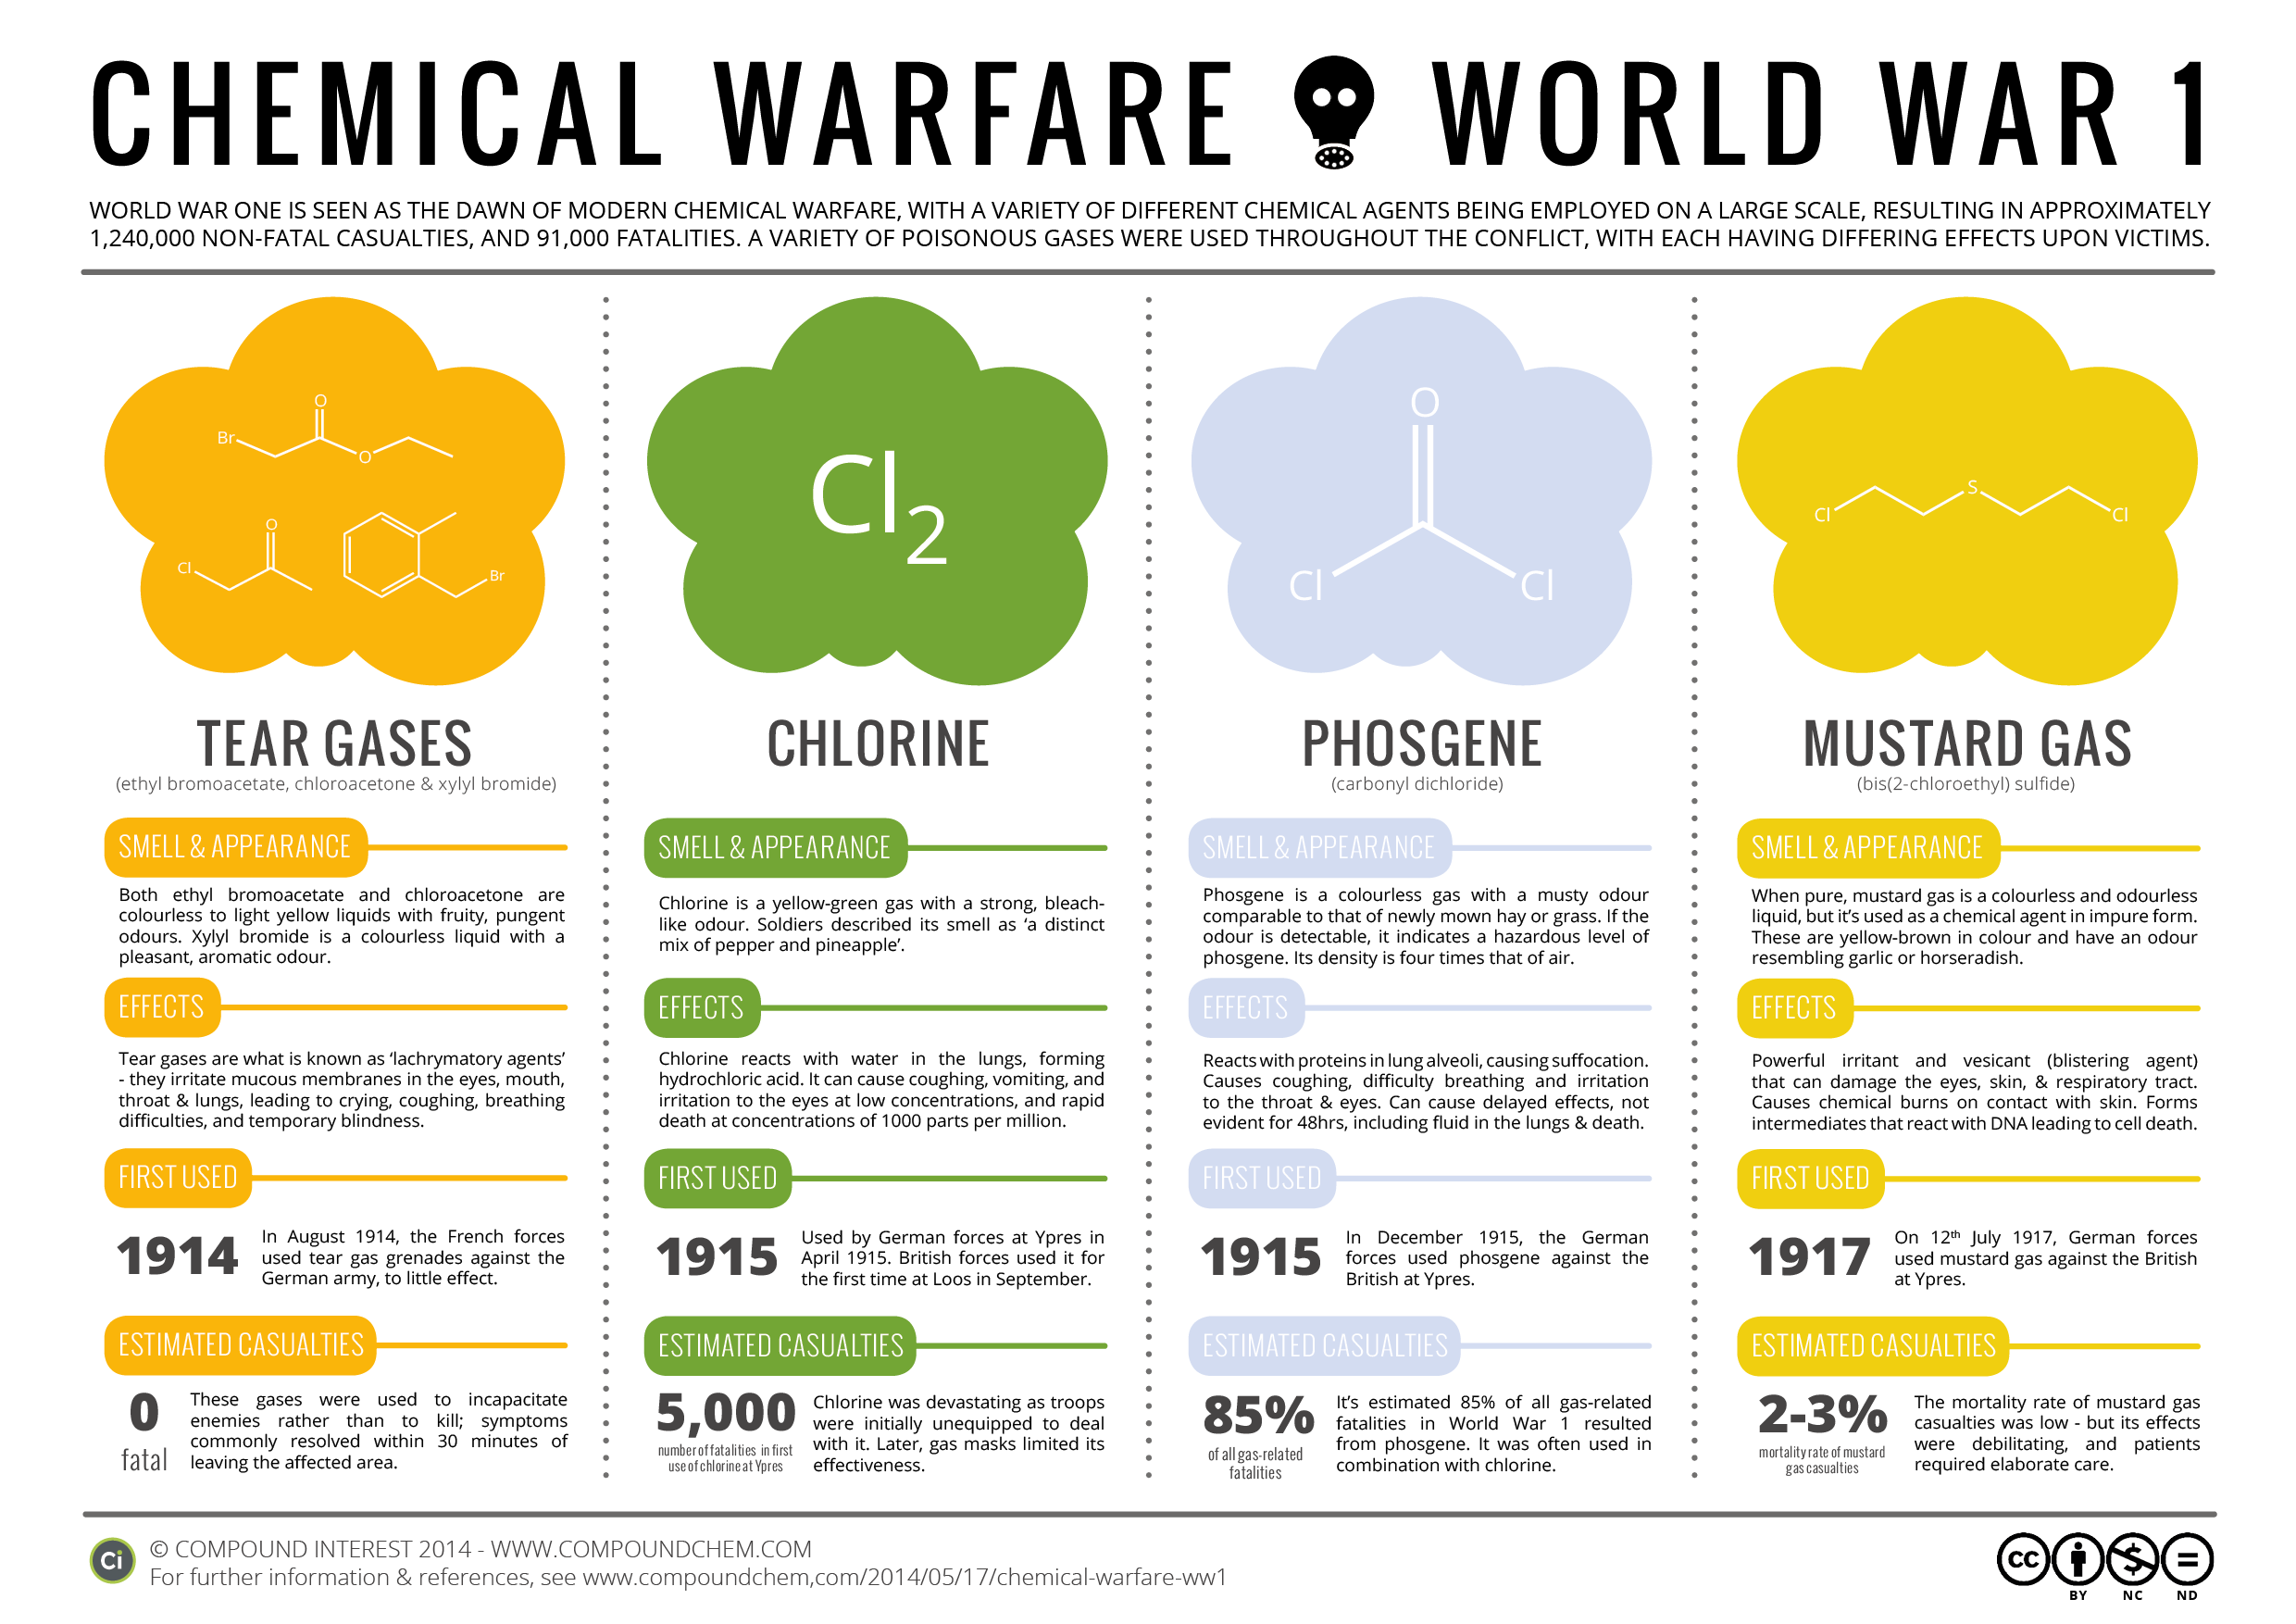 a history of chemical warfare the deadly agents Agent orange this mixture of two herbicides, most famous for its usage in vietnam war, is not a chemical weapon in the true sense of the word what was the most deadly chemical ever used in warfare update cancel ad by amazon.